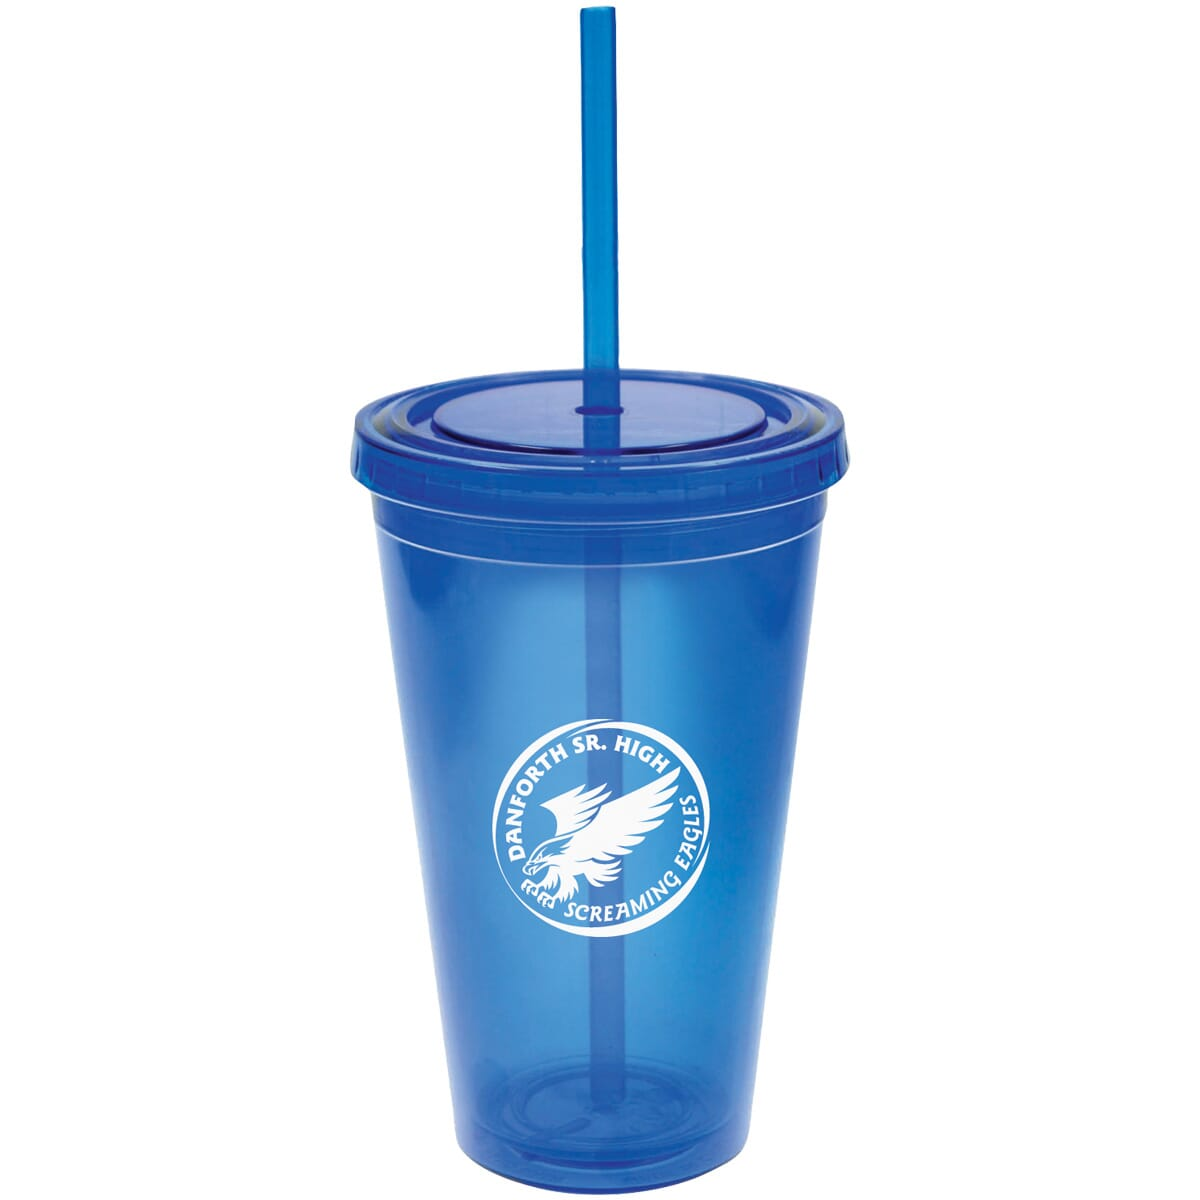 Travel cup with straw